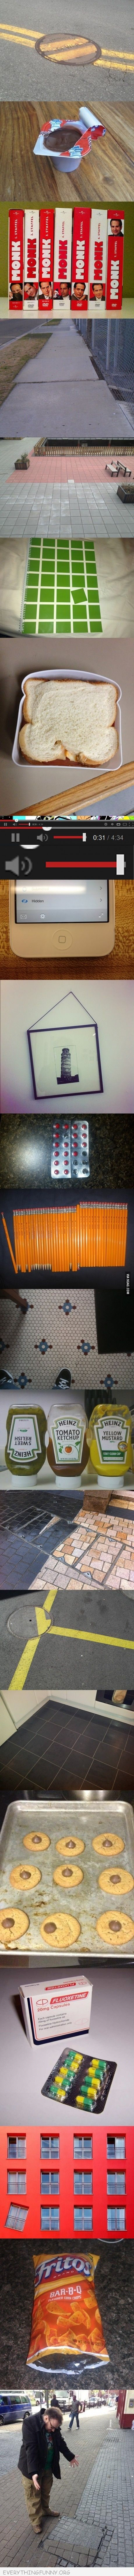 funny things that would drive people with OCD Crazy